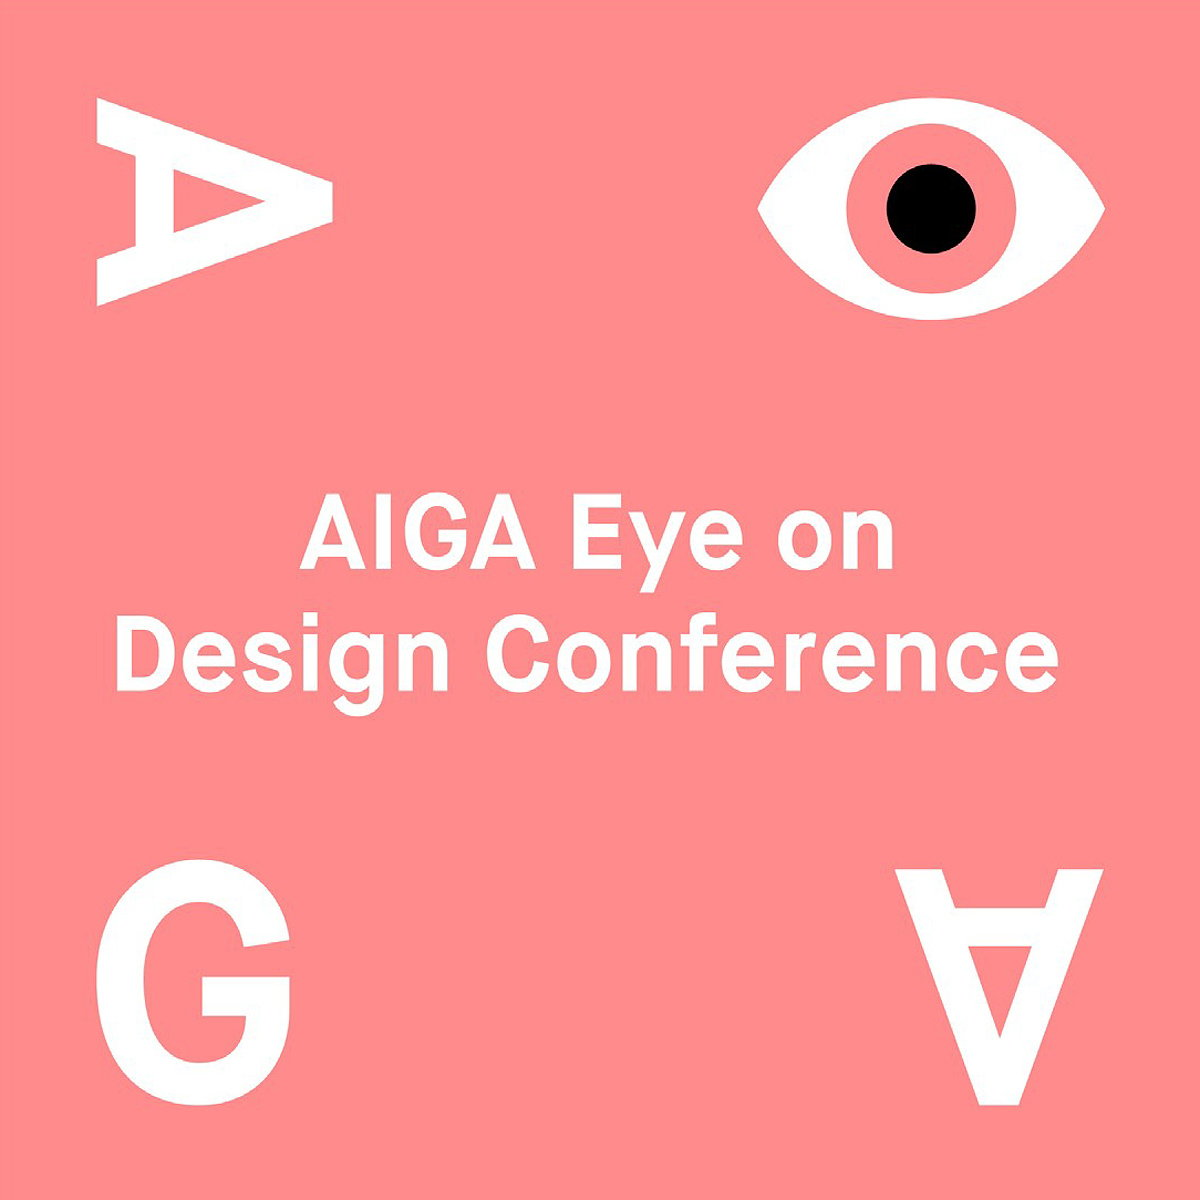 AIGA Eye on Design Unveils New Branding